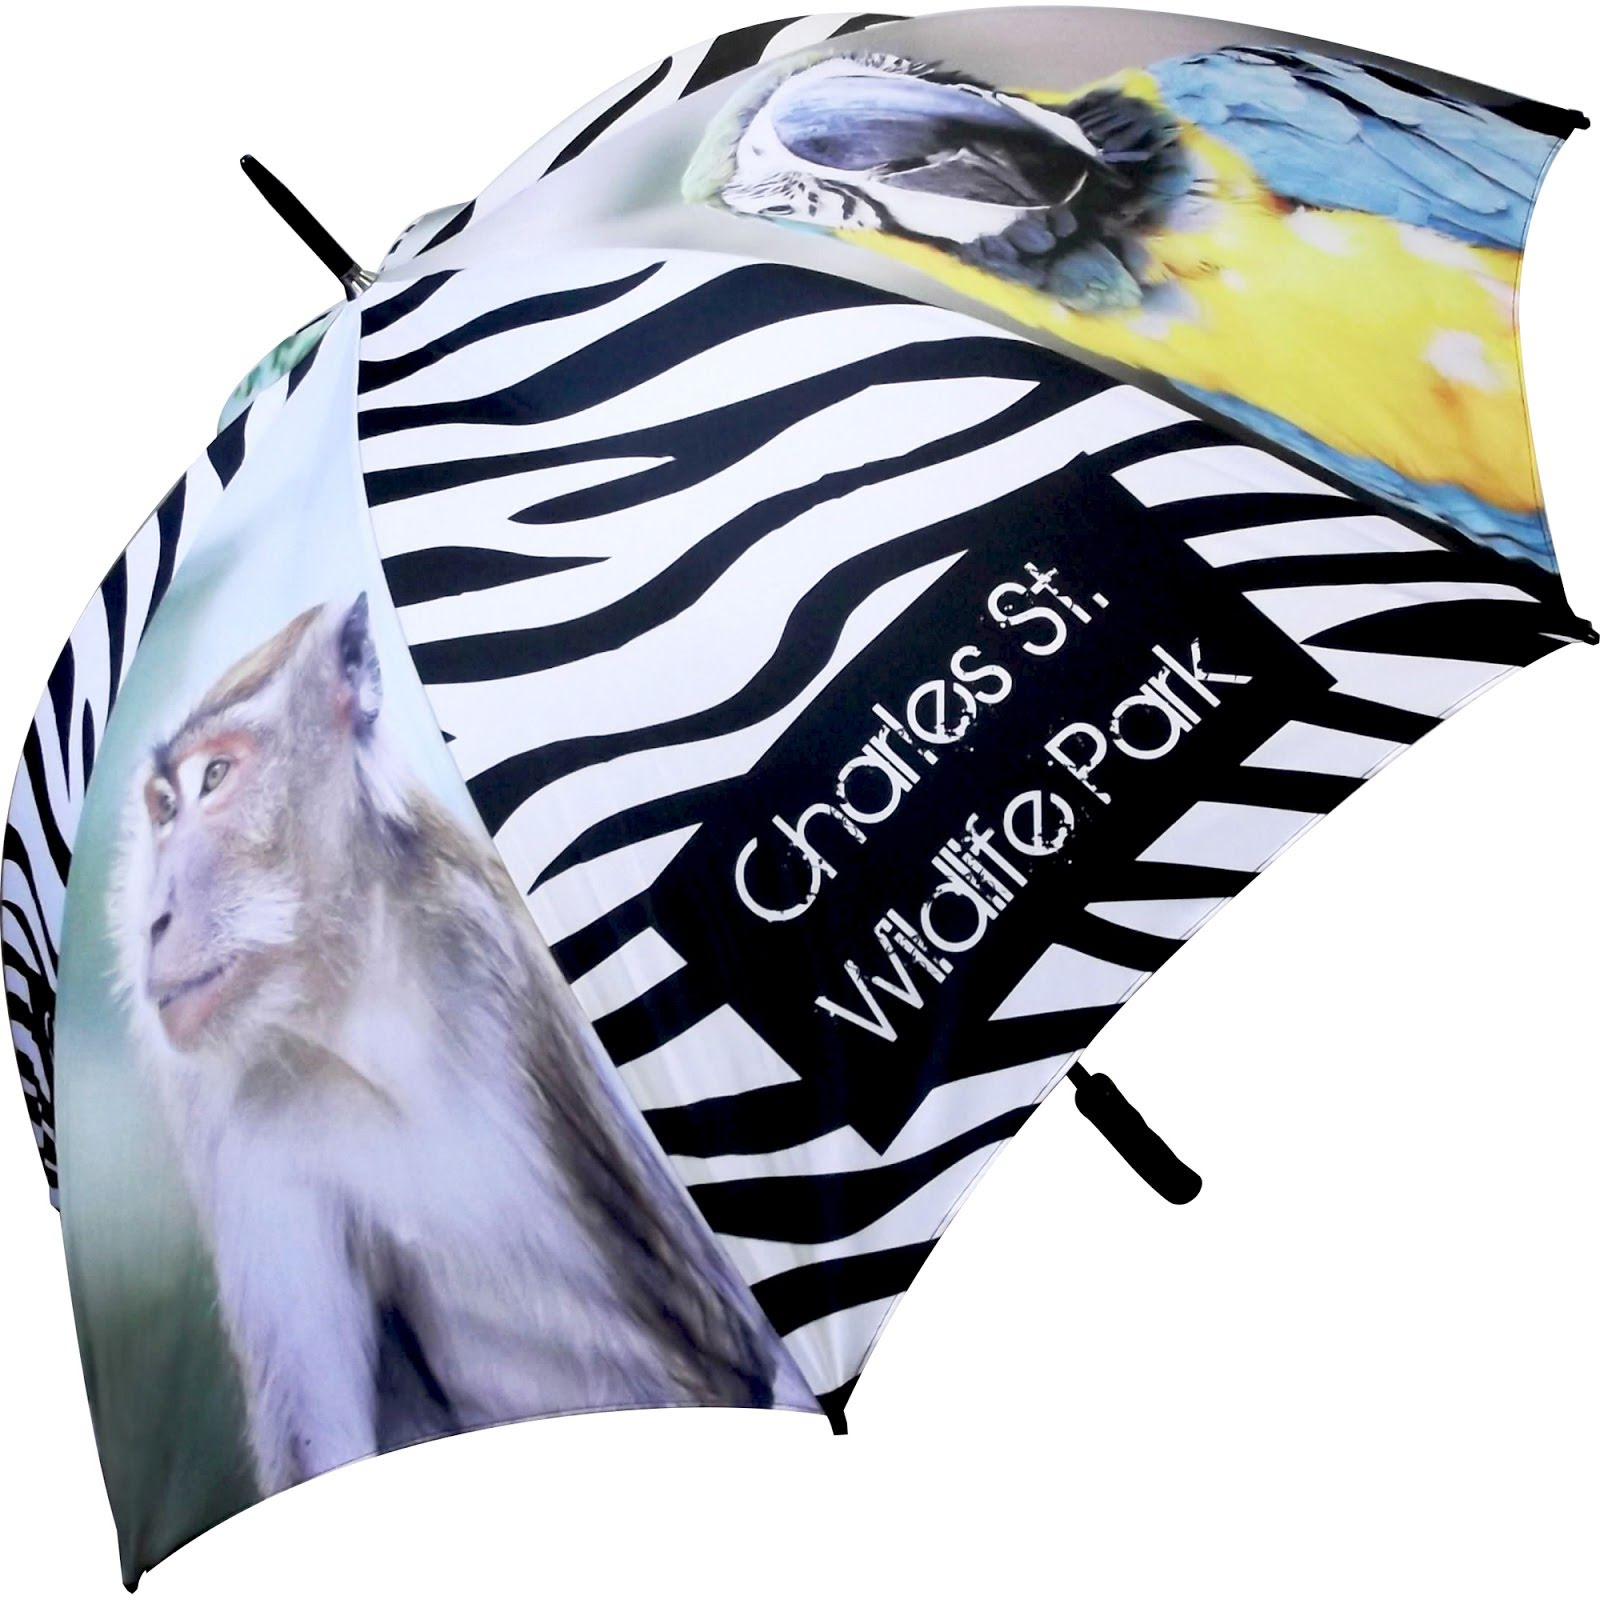 Bespoke Printed Golf Umbrellas